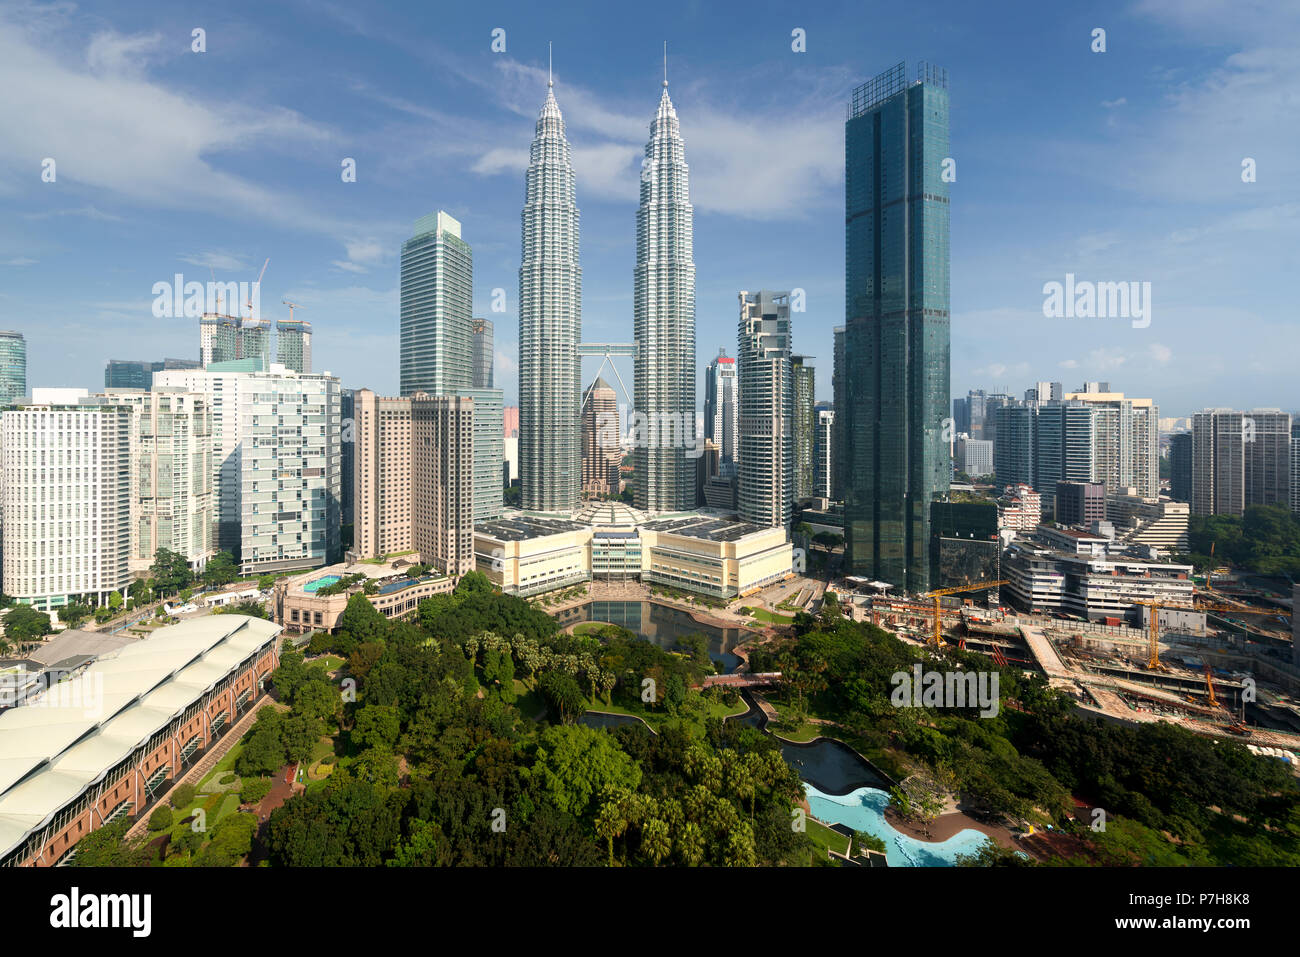 Kuala Lumpur city skyline and skyscrapers building at business district downtown in Kuala Lumpur, Malaysia. Asia. - Stock Image